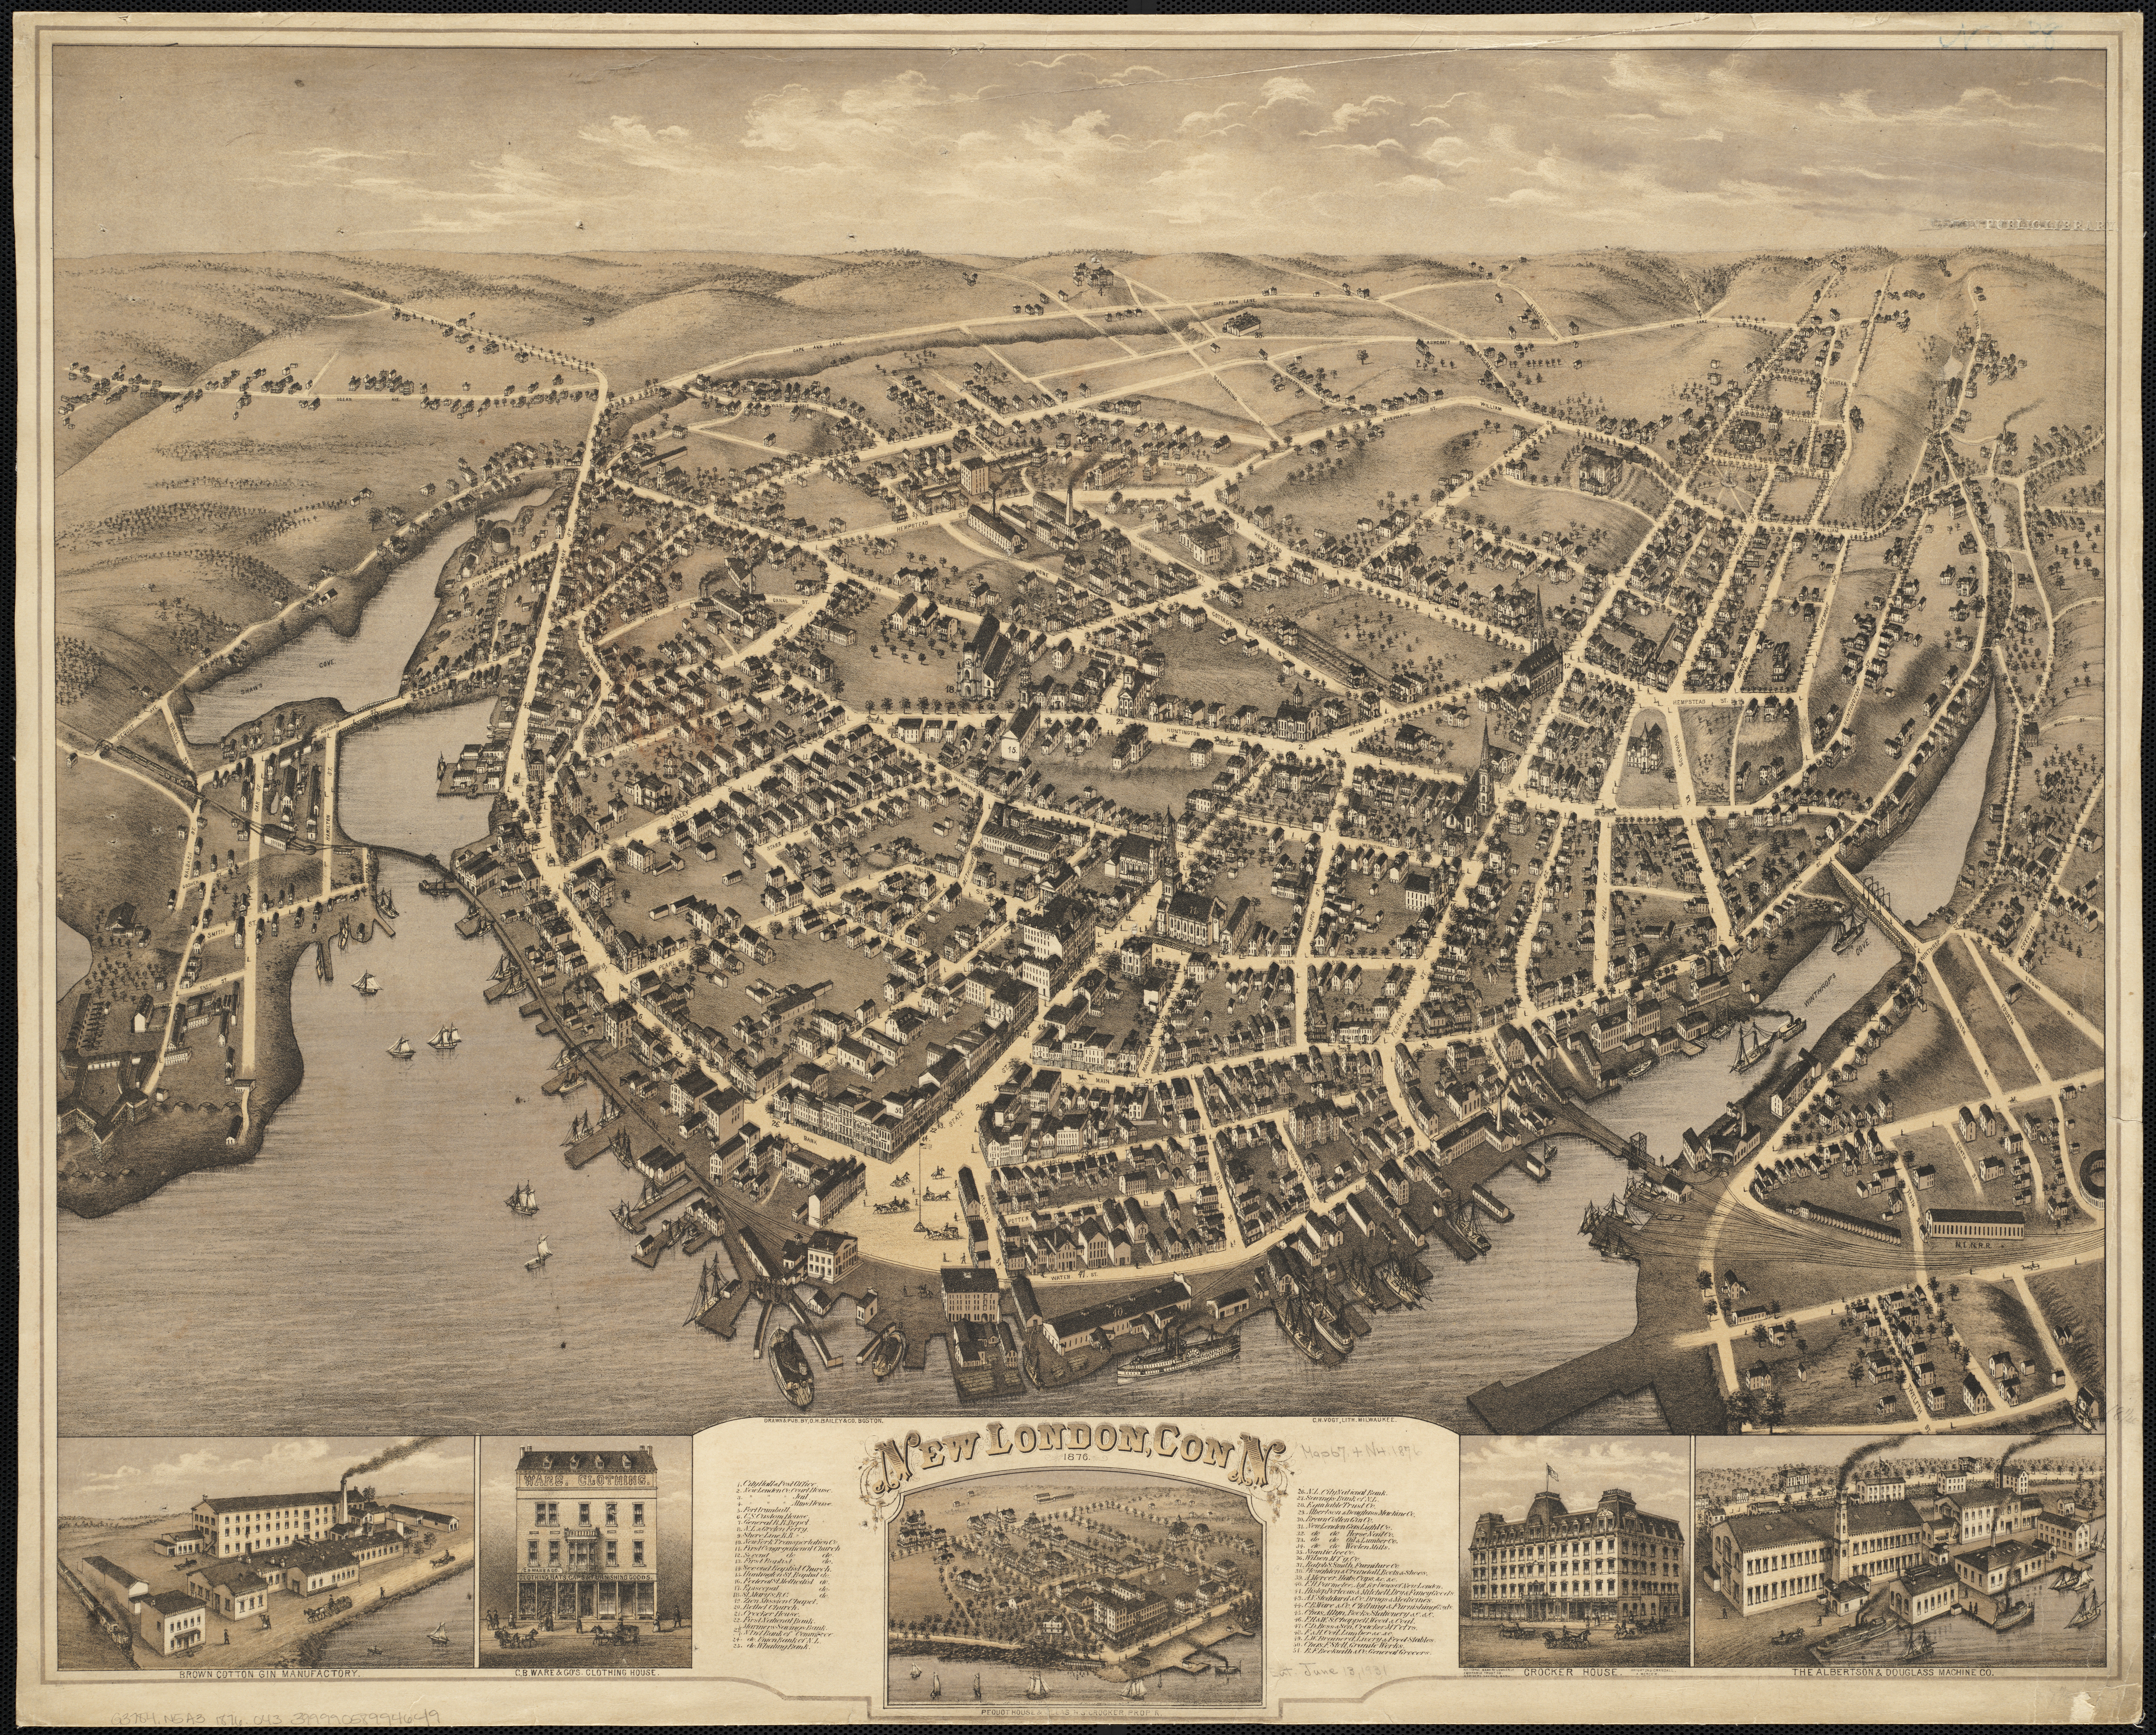 File:New London CT 1876 aerial map.   Wikimedia Commons